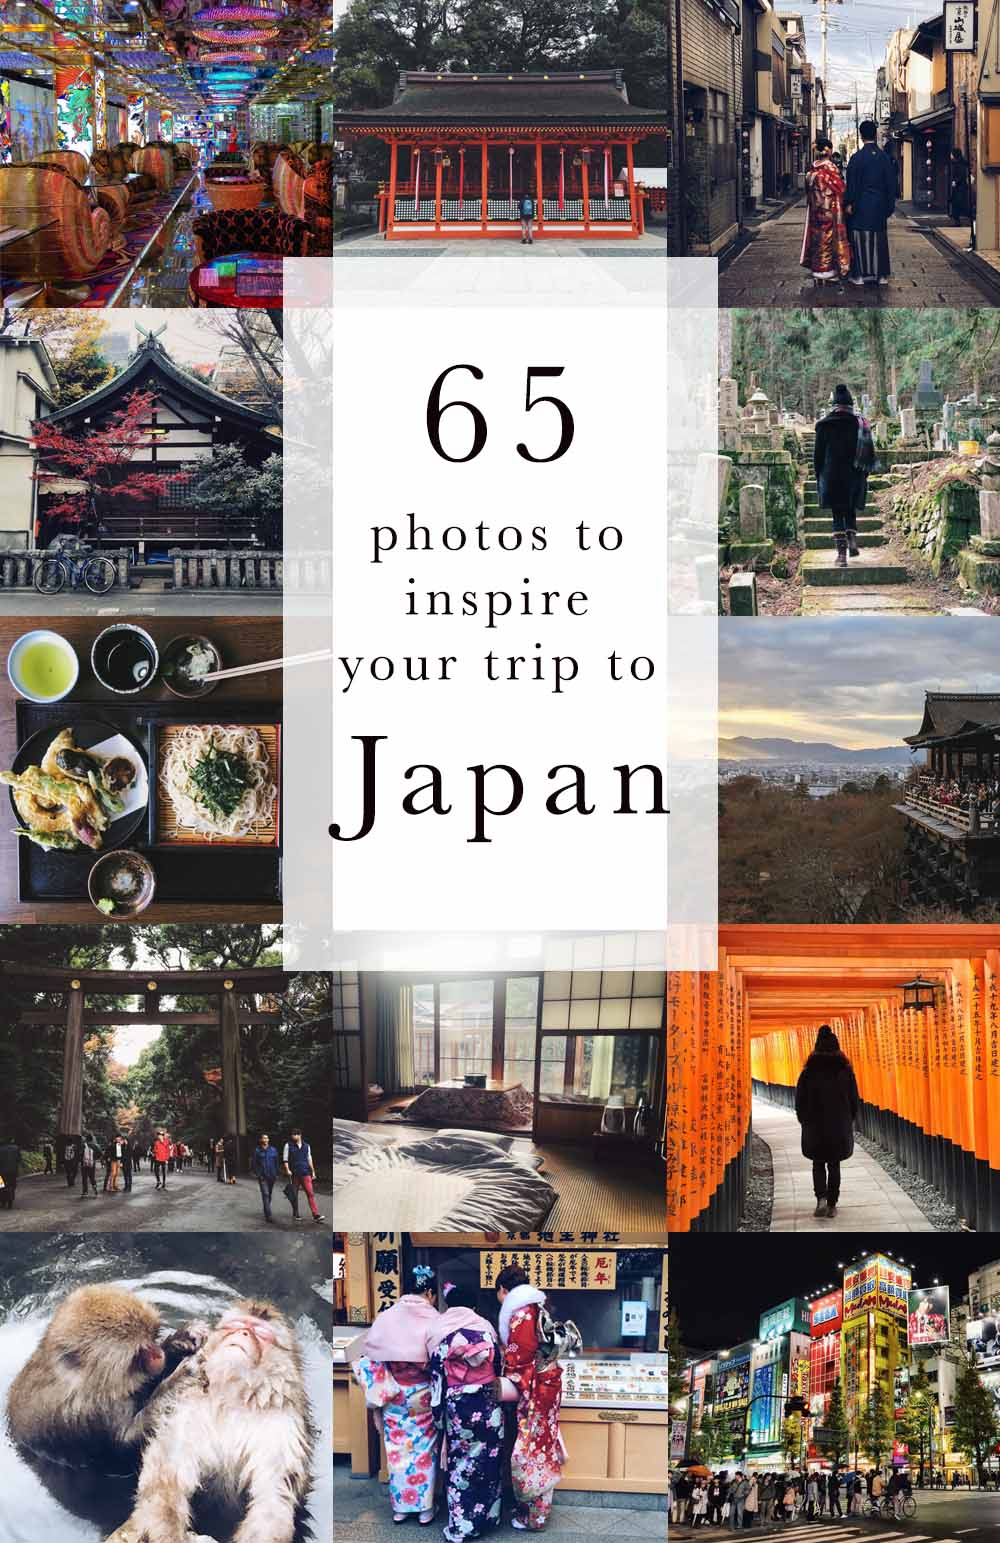 65 photos to inspire your trip to Japan